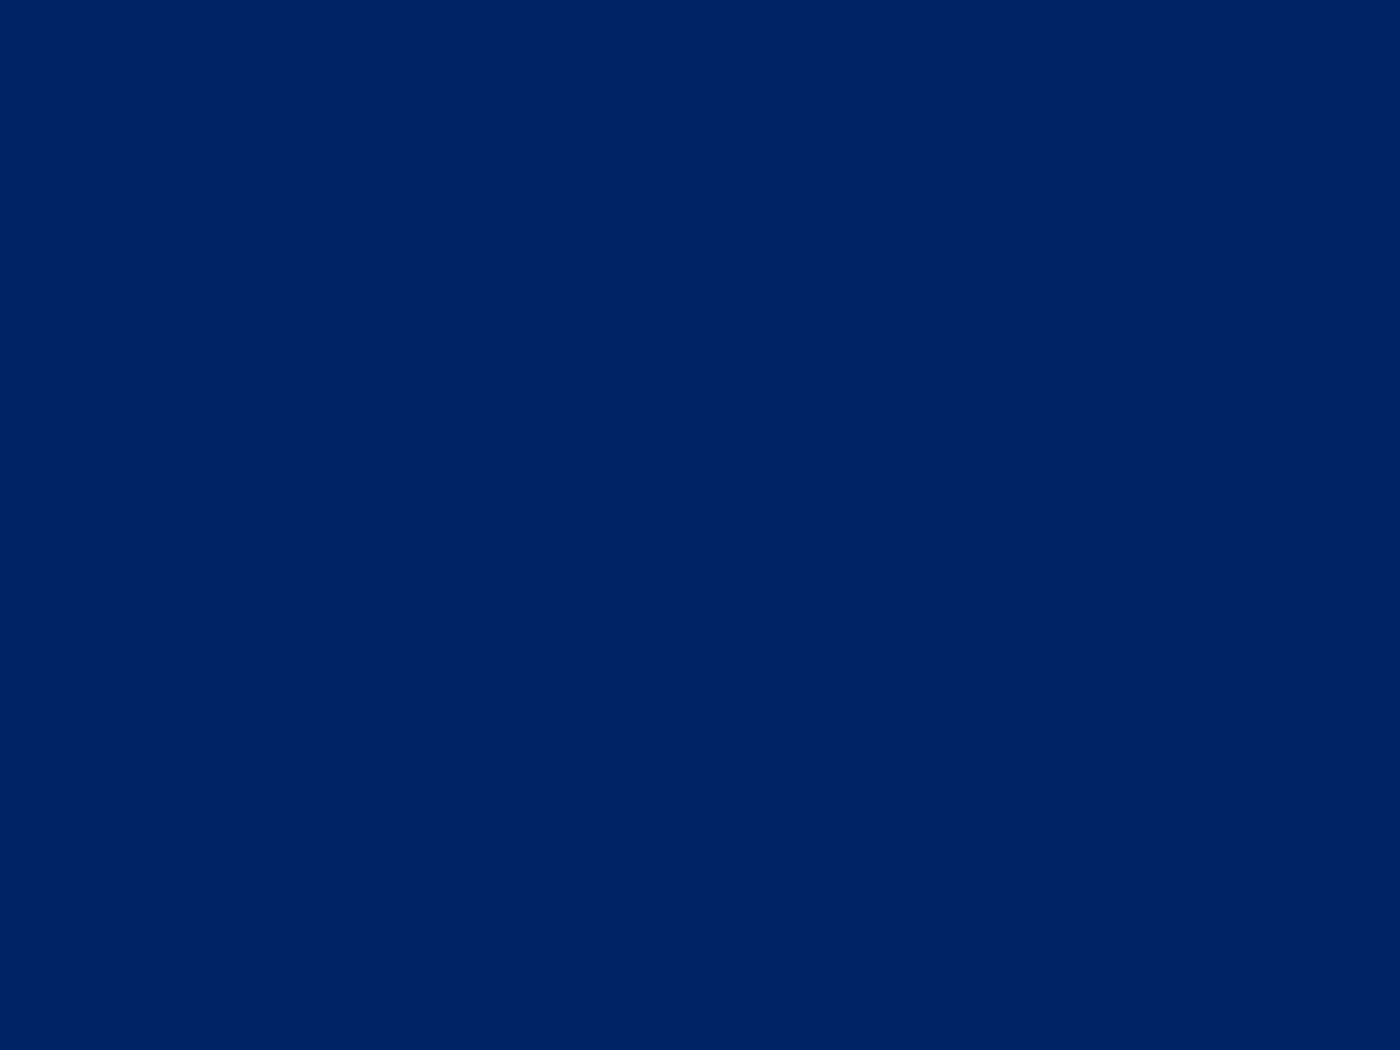 1400x1050 Royal Blue Traditional Solid Color Background